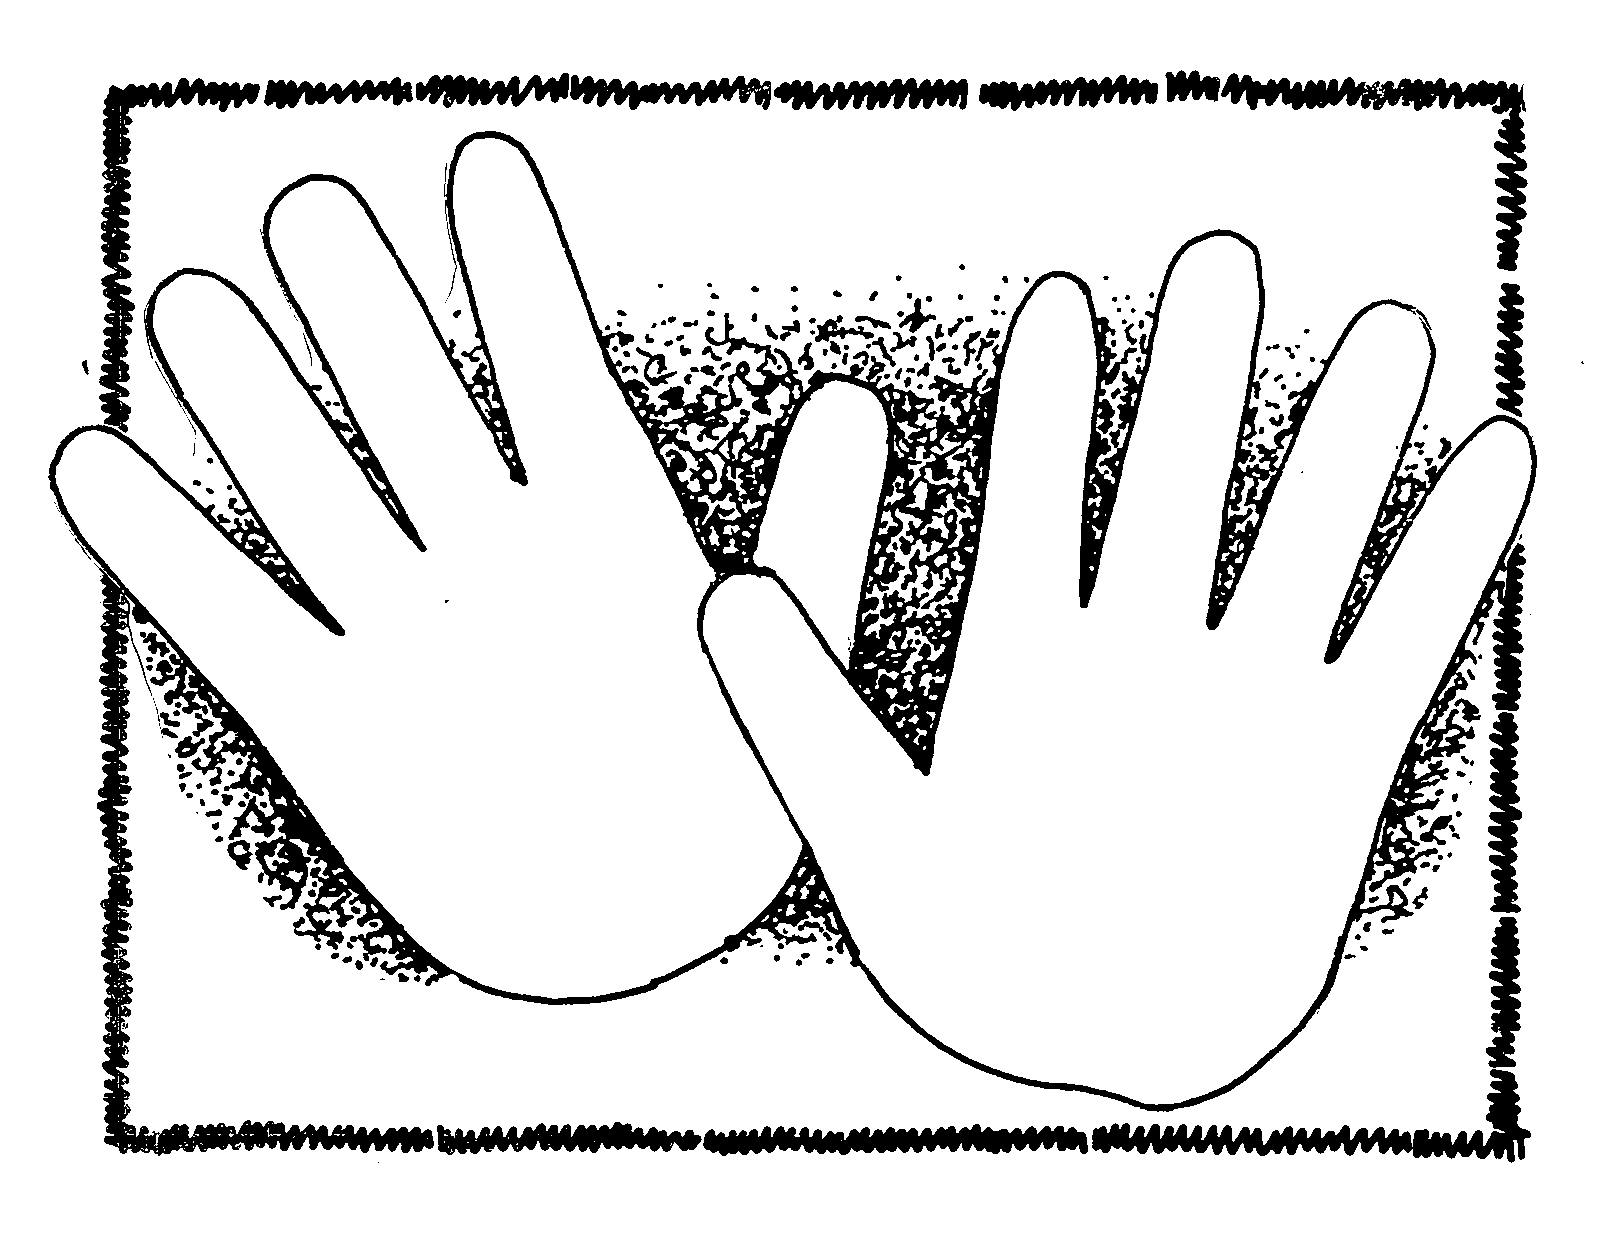 Black and white clipart of hands over hands graphic transparent download Free Hands Images, Download Free Clip Art, Free Clip Art on Clipart ... graphic transparent download